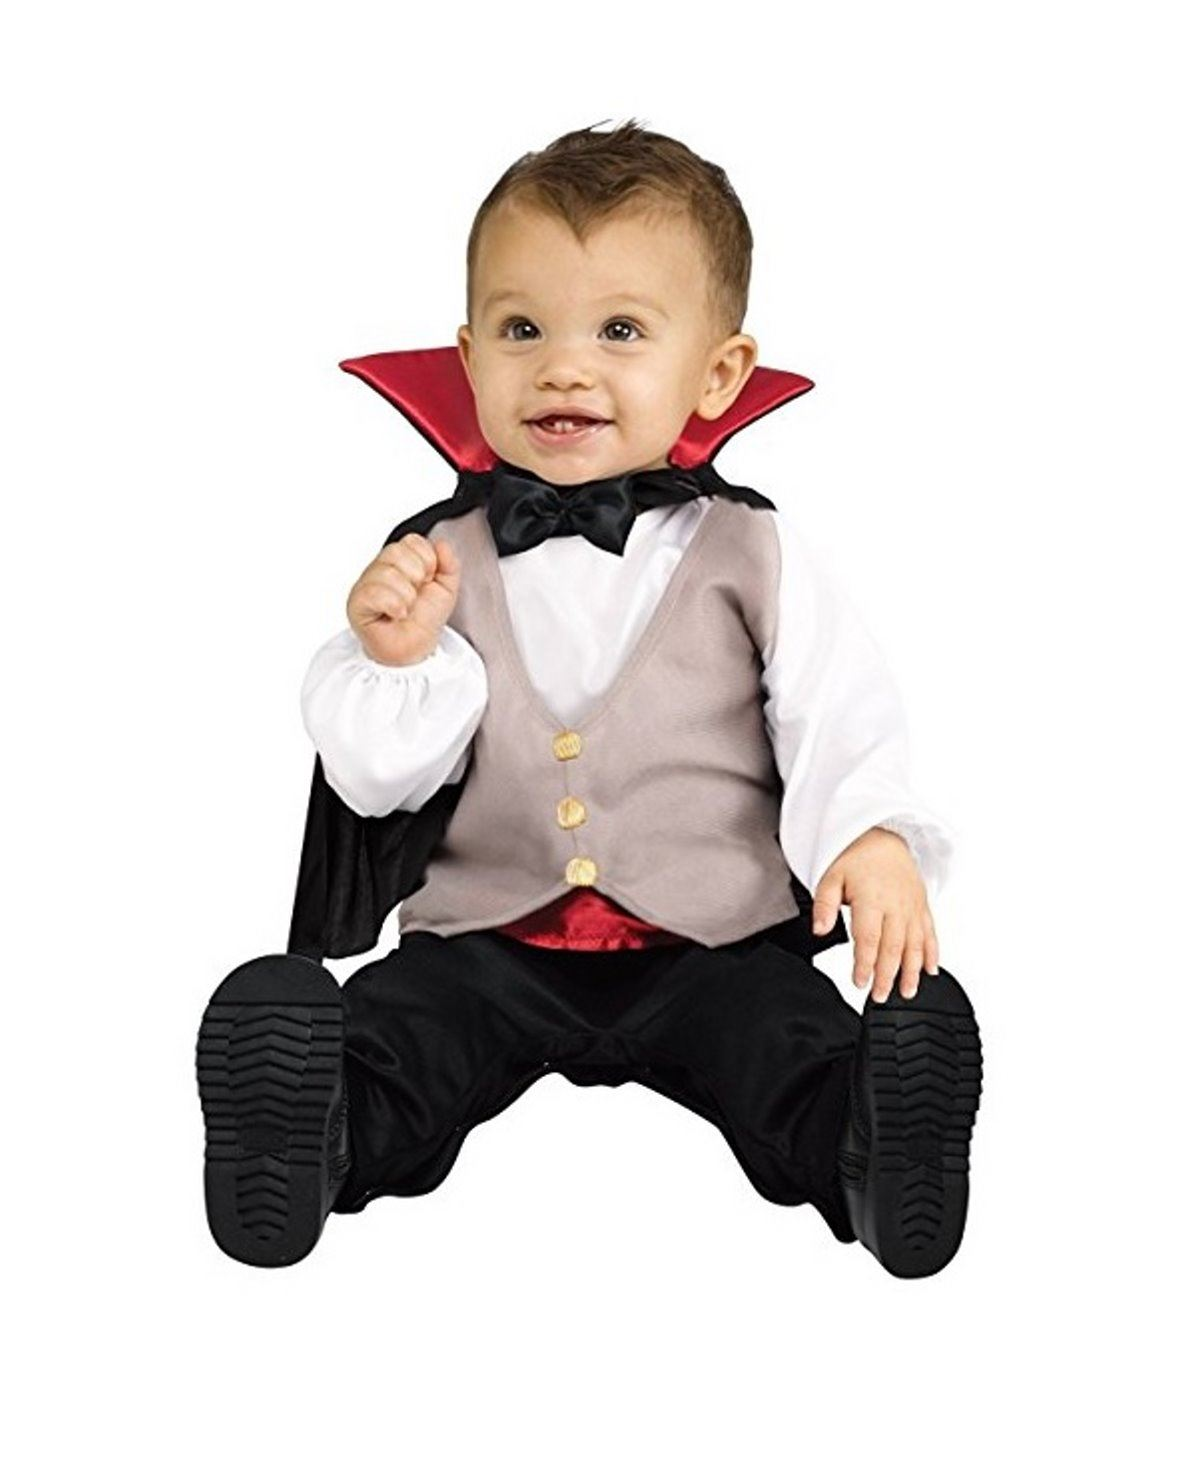 Disfraz Halloween Bebe 5 Meses Toddler Halloween Fancy Dress Costume Outfit Jumpsuit Baby